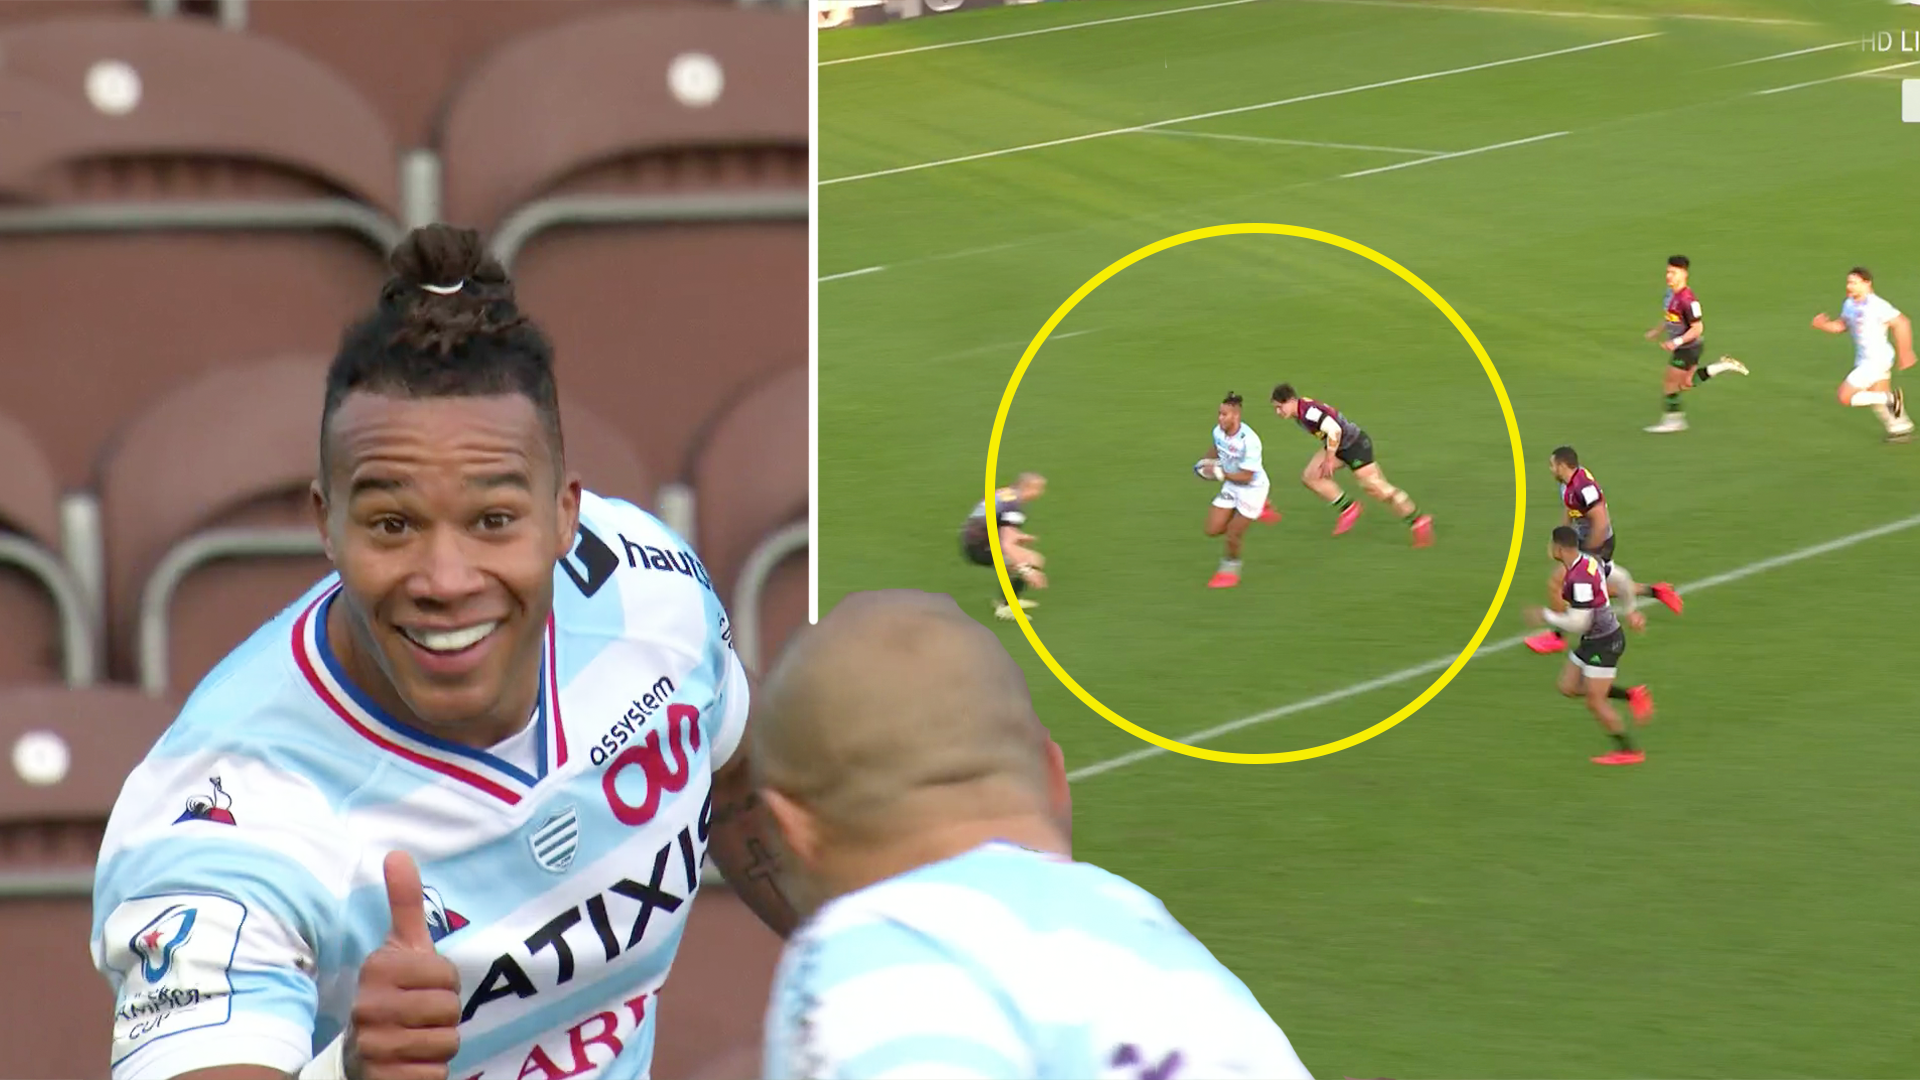 Stoop stunned as French flyer Teddy Thomas takes on half of Quins team to score phenomenal solo try